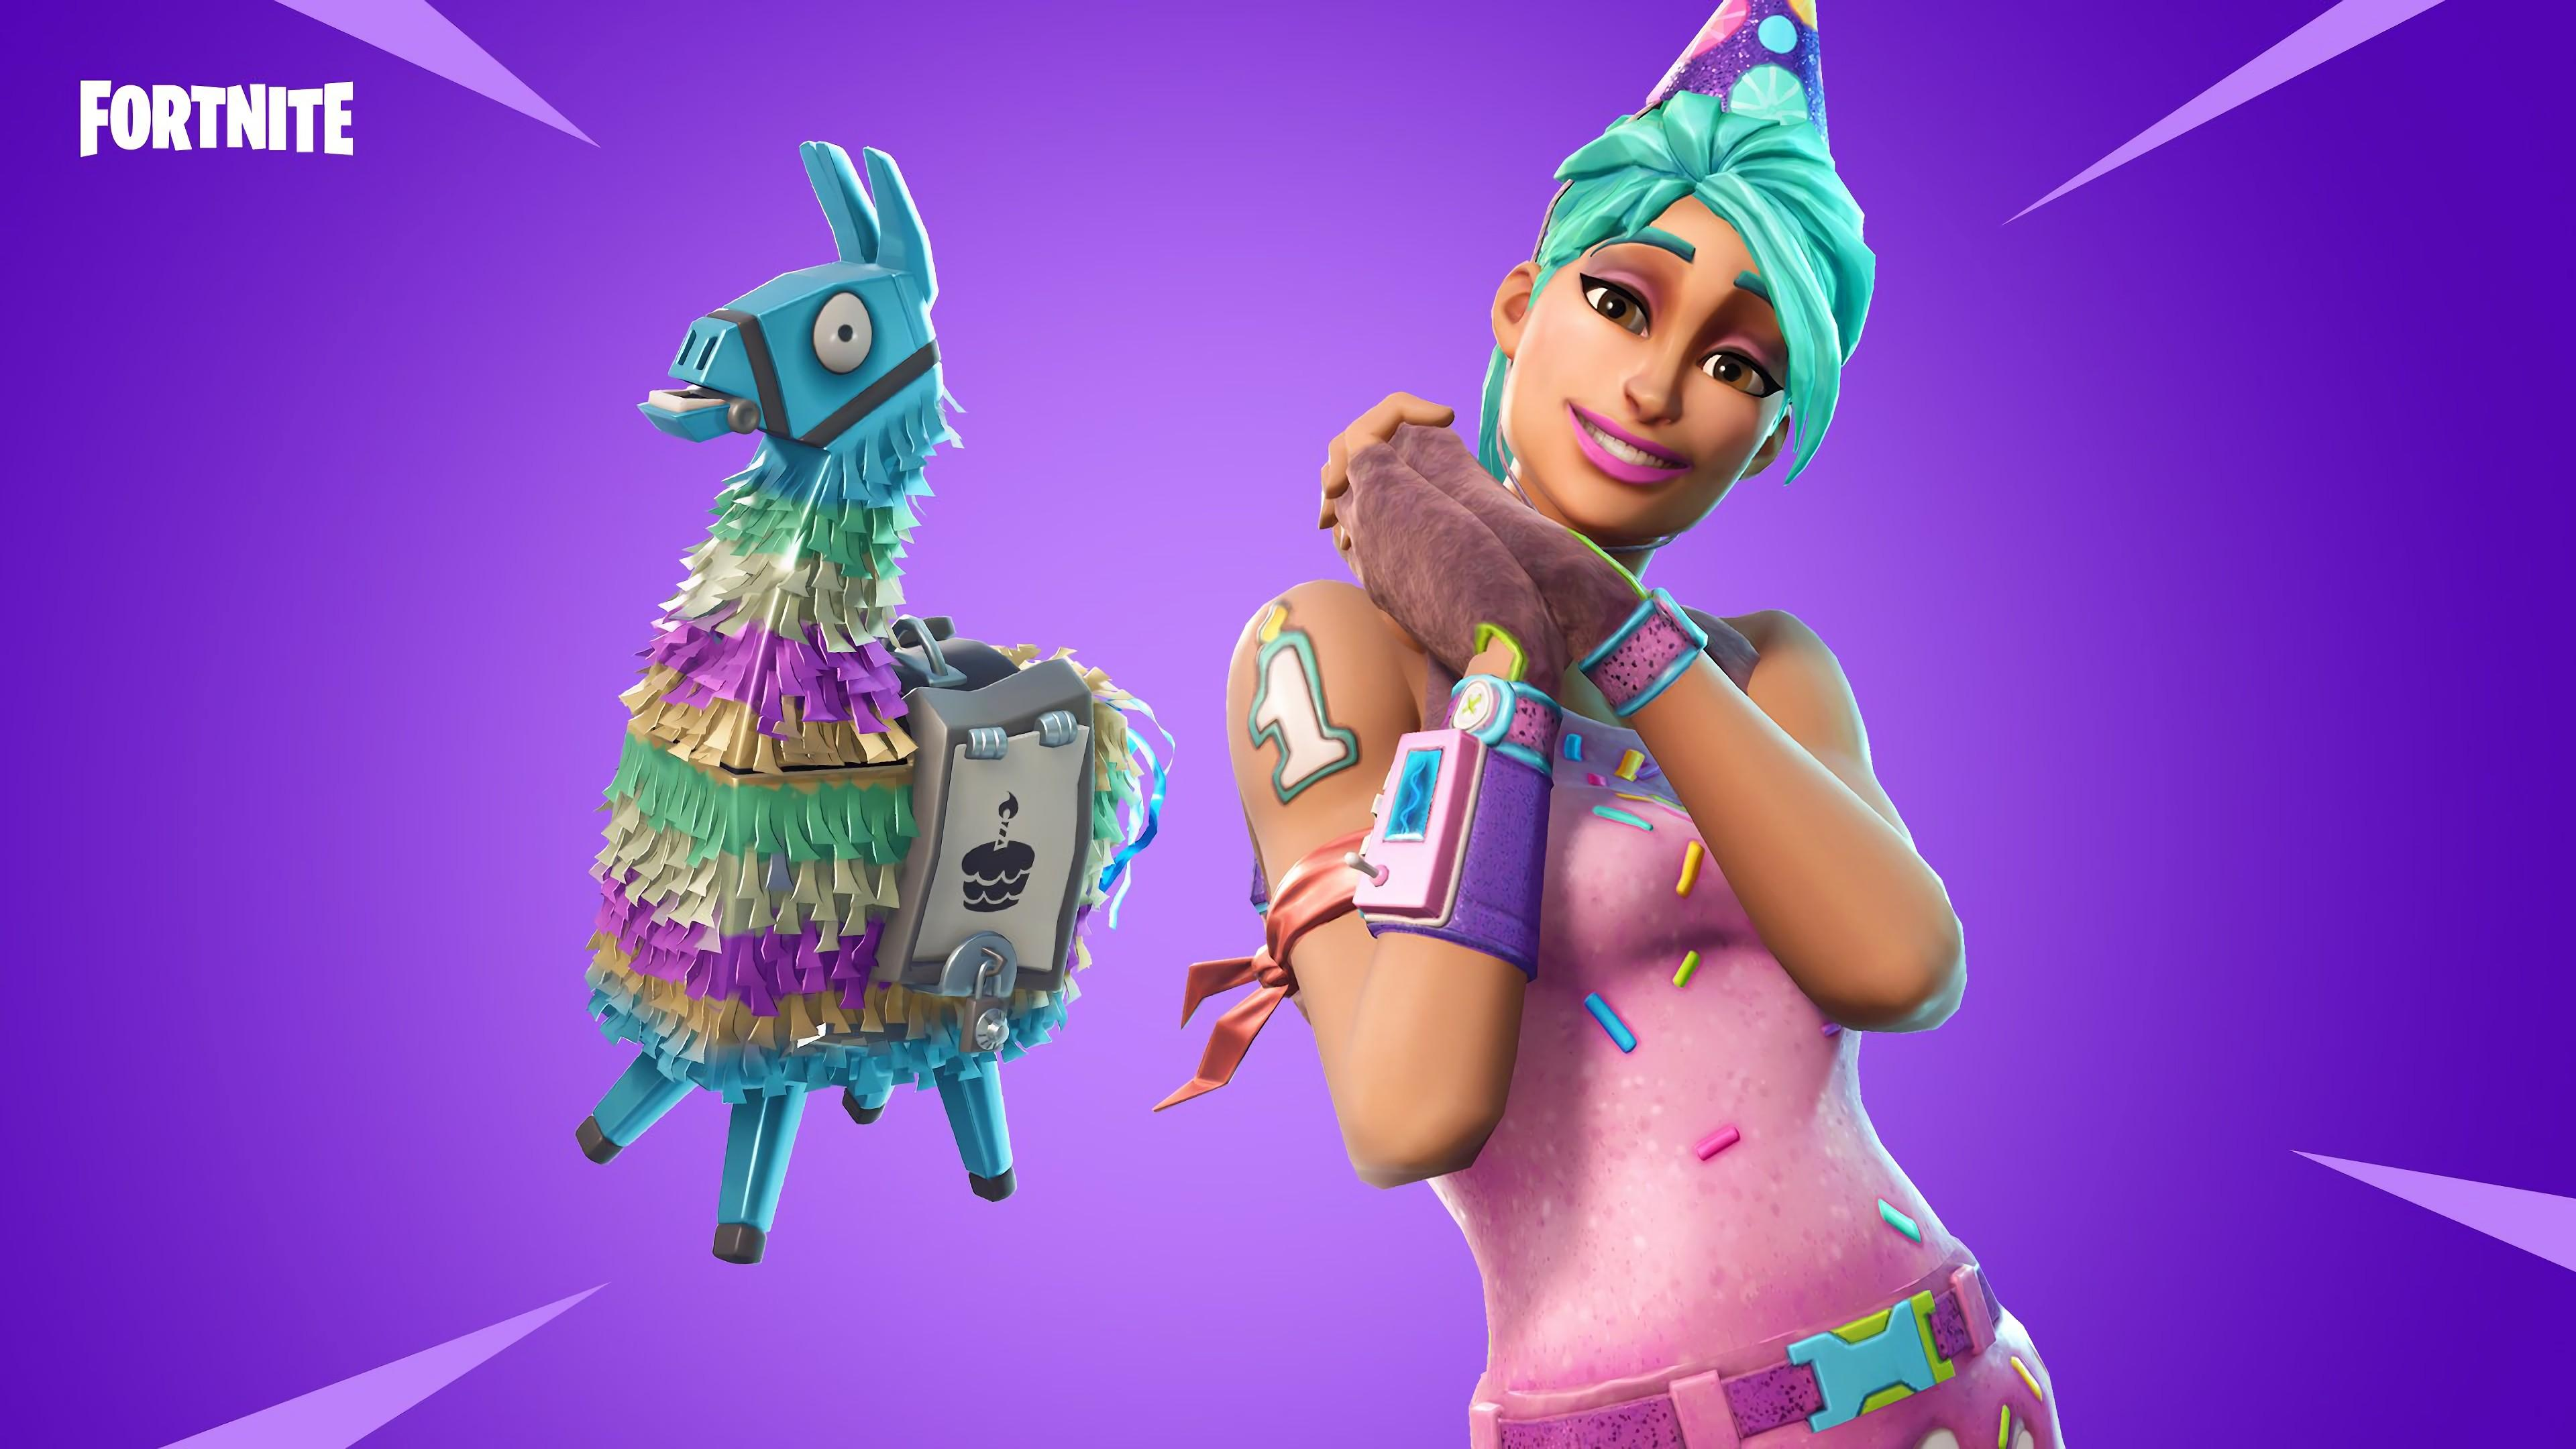 Wallpaper Fortnite, screenshot, 4K, Games #19923